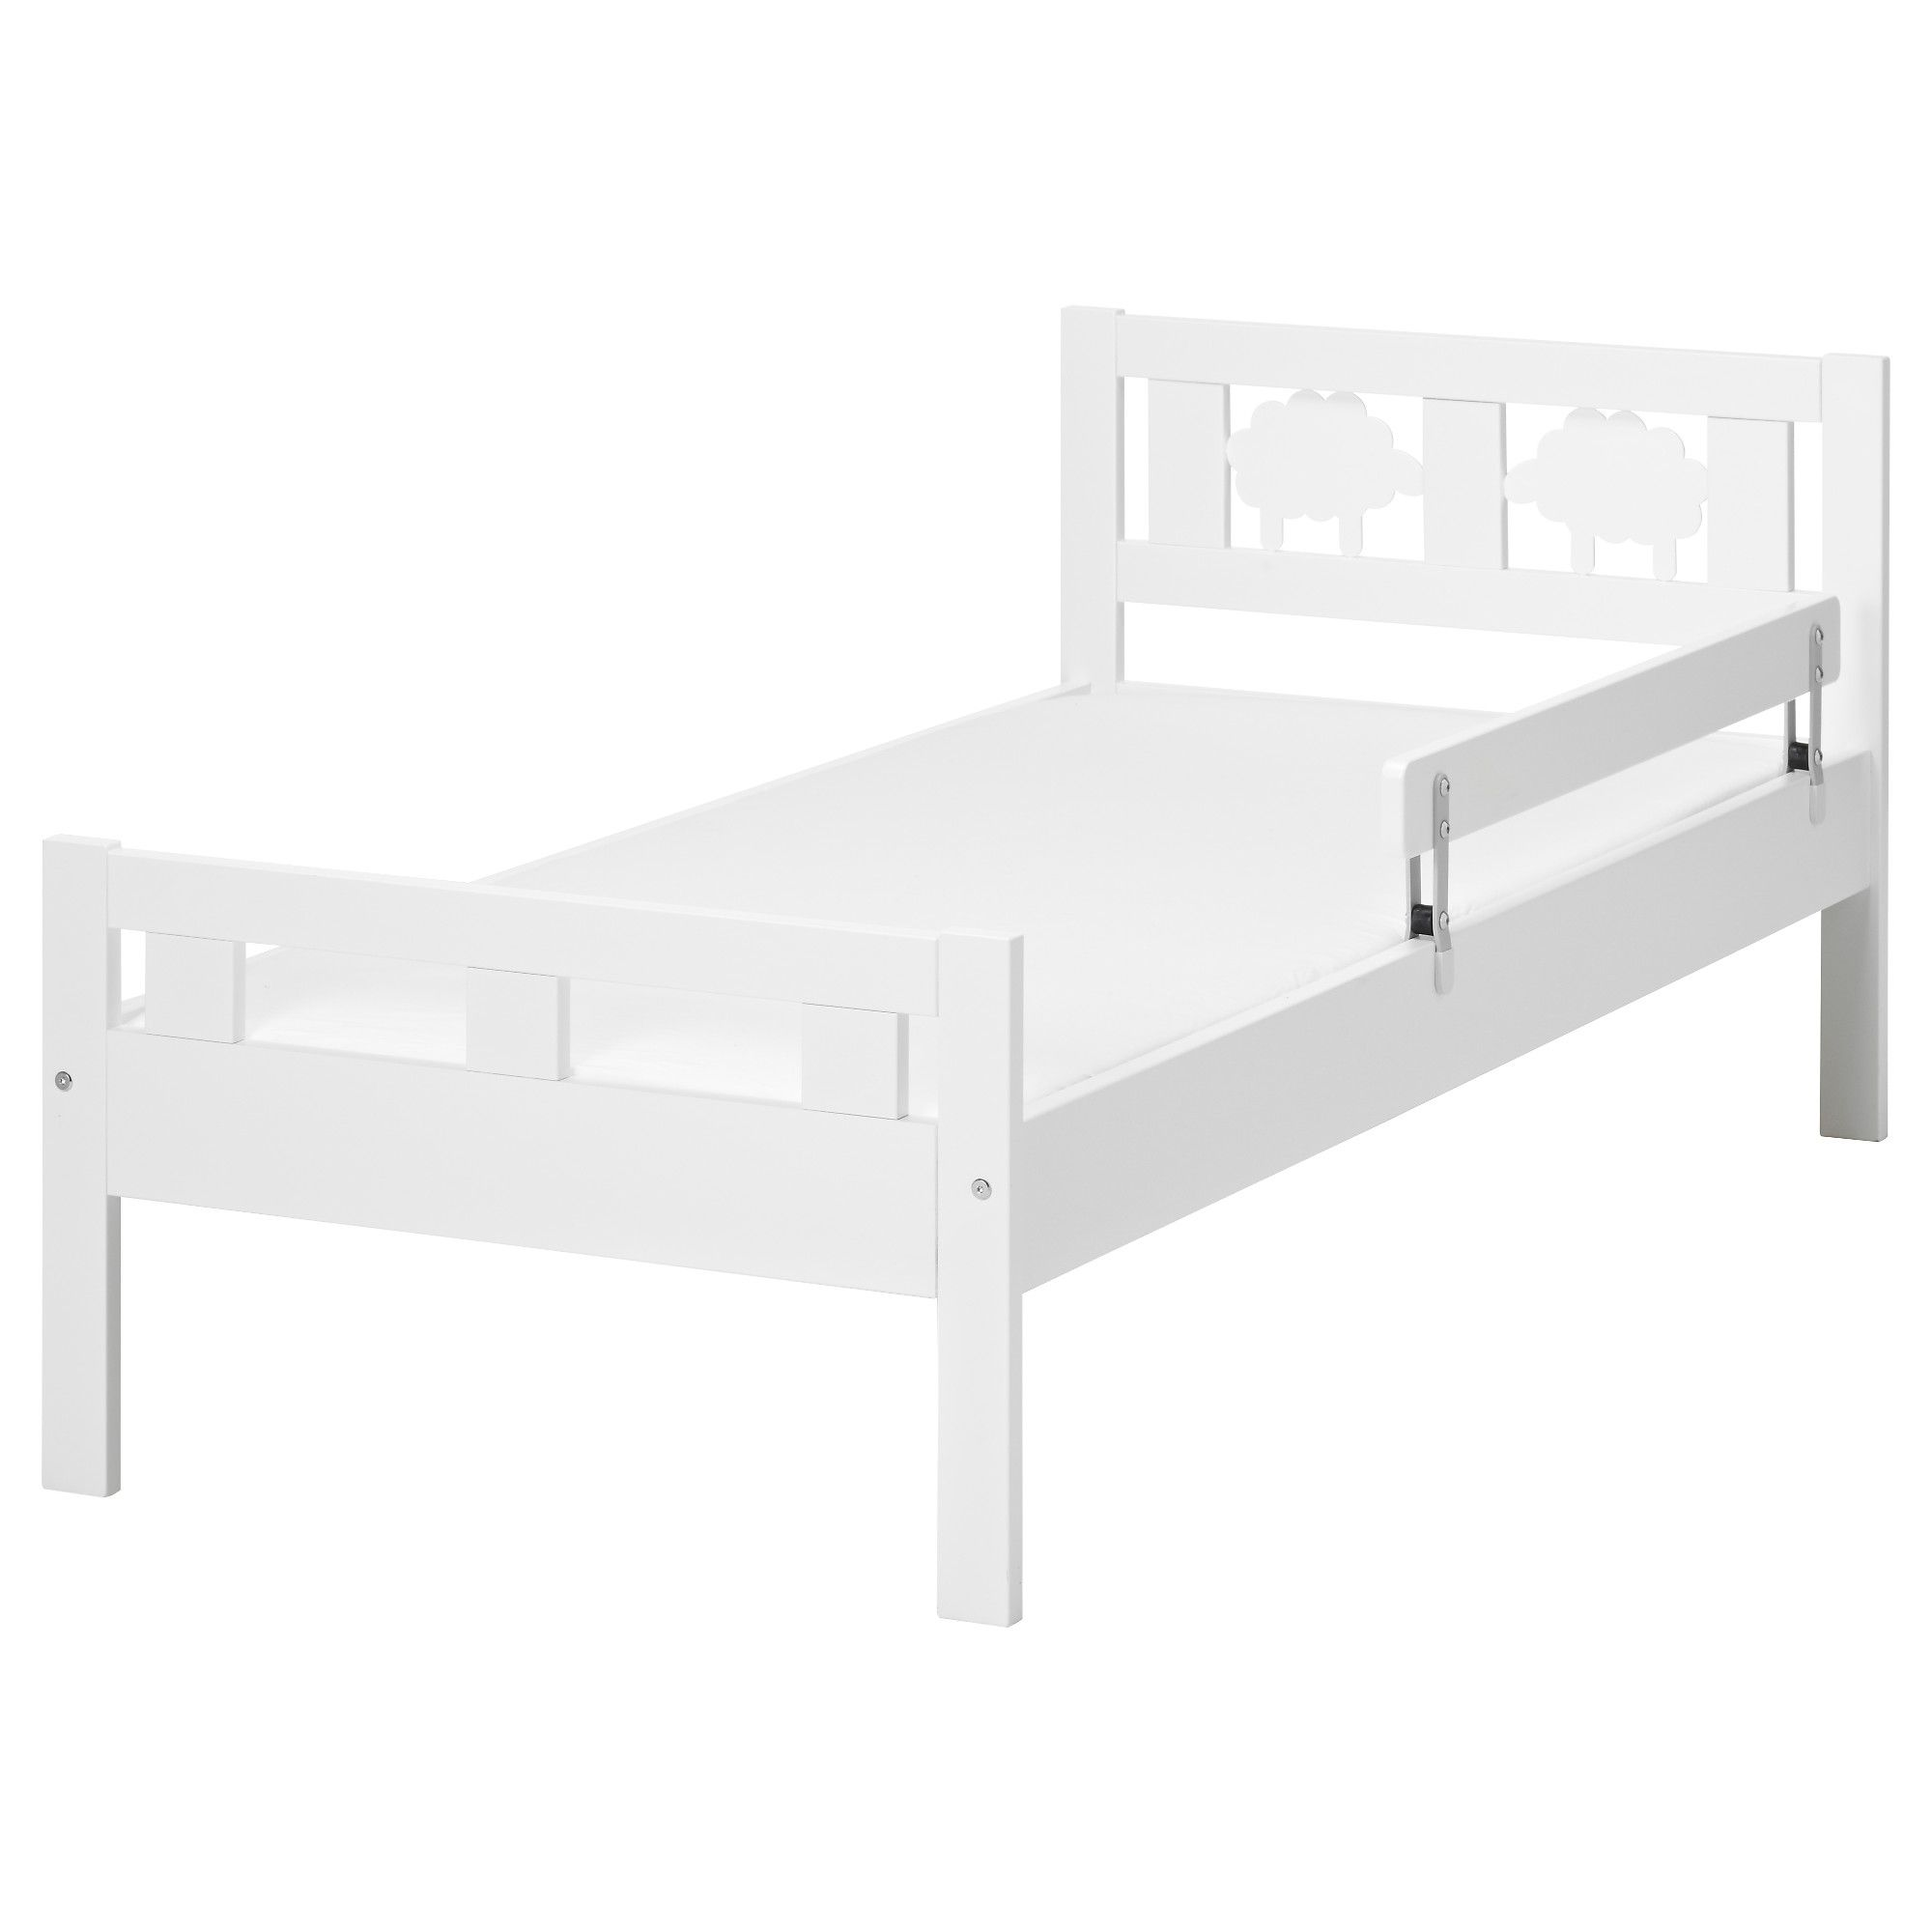 Kritter Bed Frame With Slatted Bed Base White 27 1 2x63